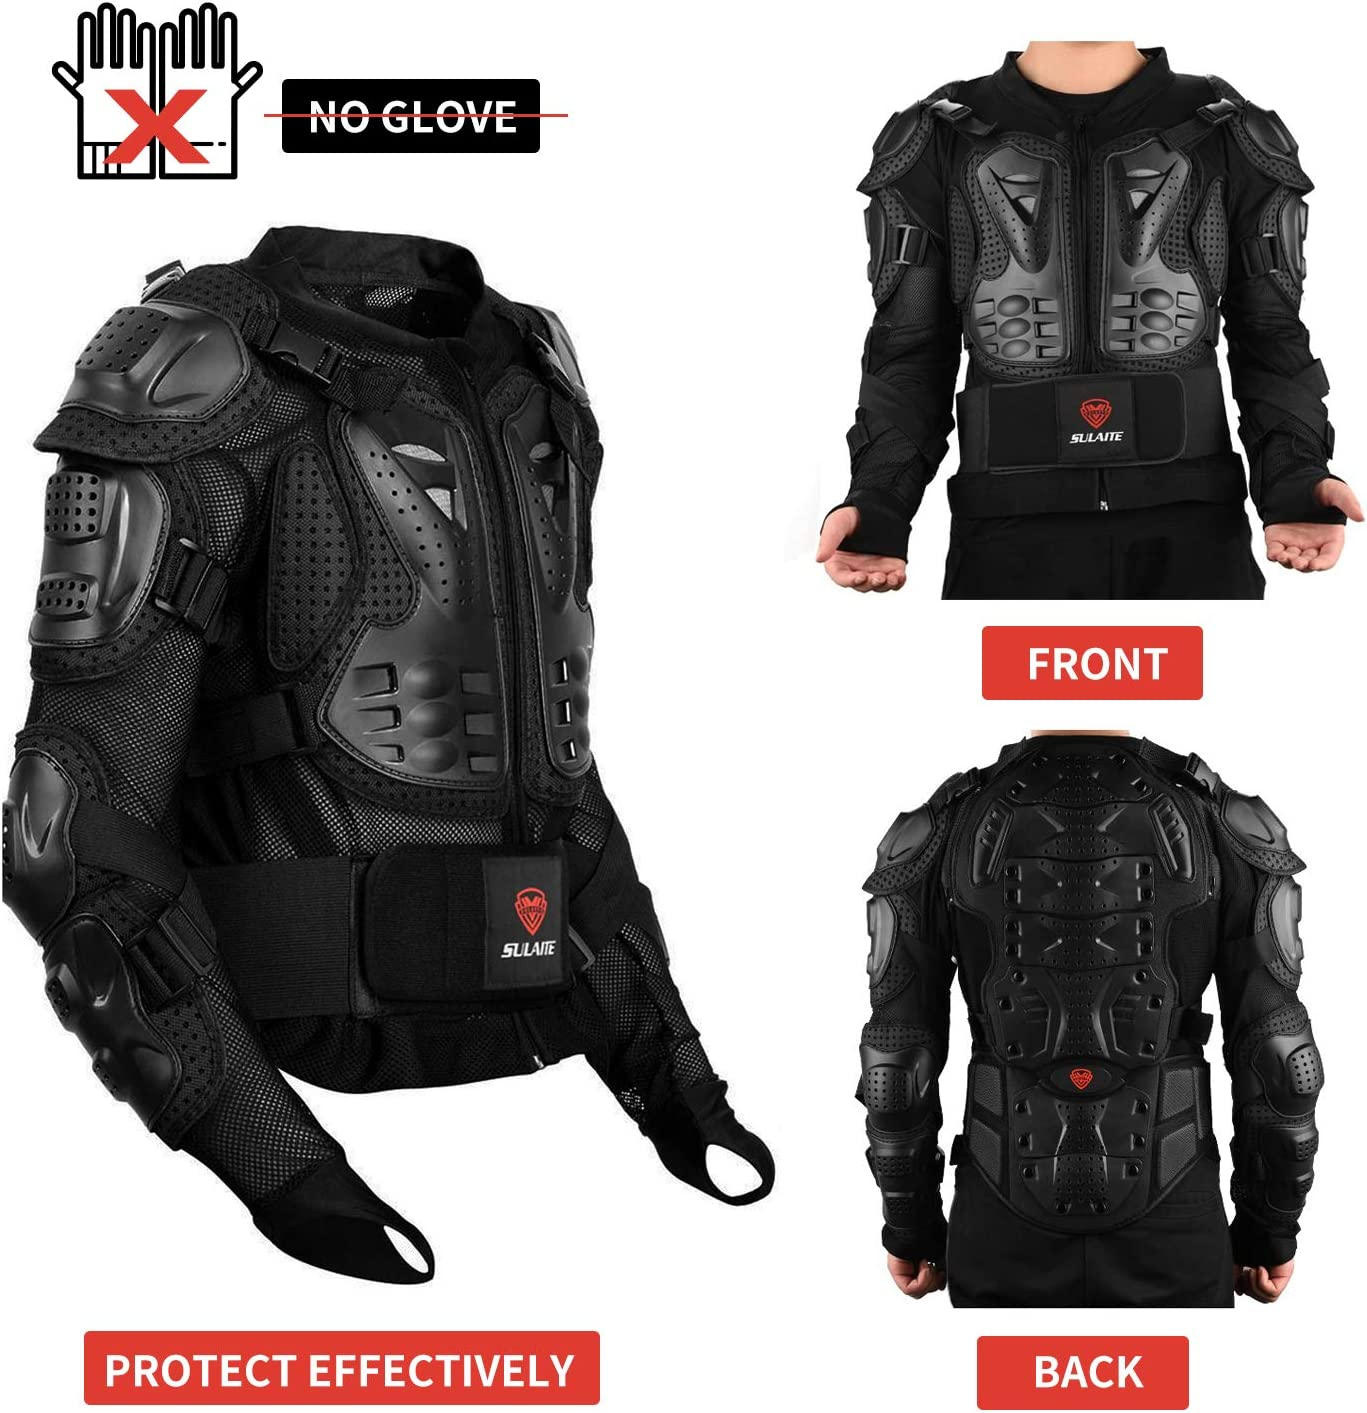 Blue Knee Gurad Armoured Mountain Cycling Riding Skating Snowboarding Track Crash CE Approved Motocross Motorbike Body Armour Motorcycle Protection Jacket